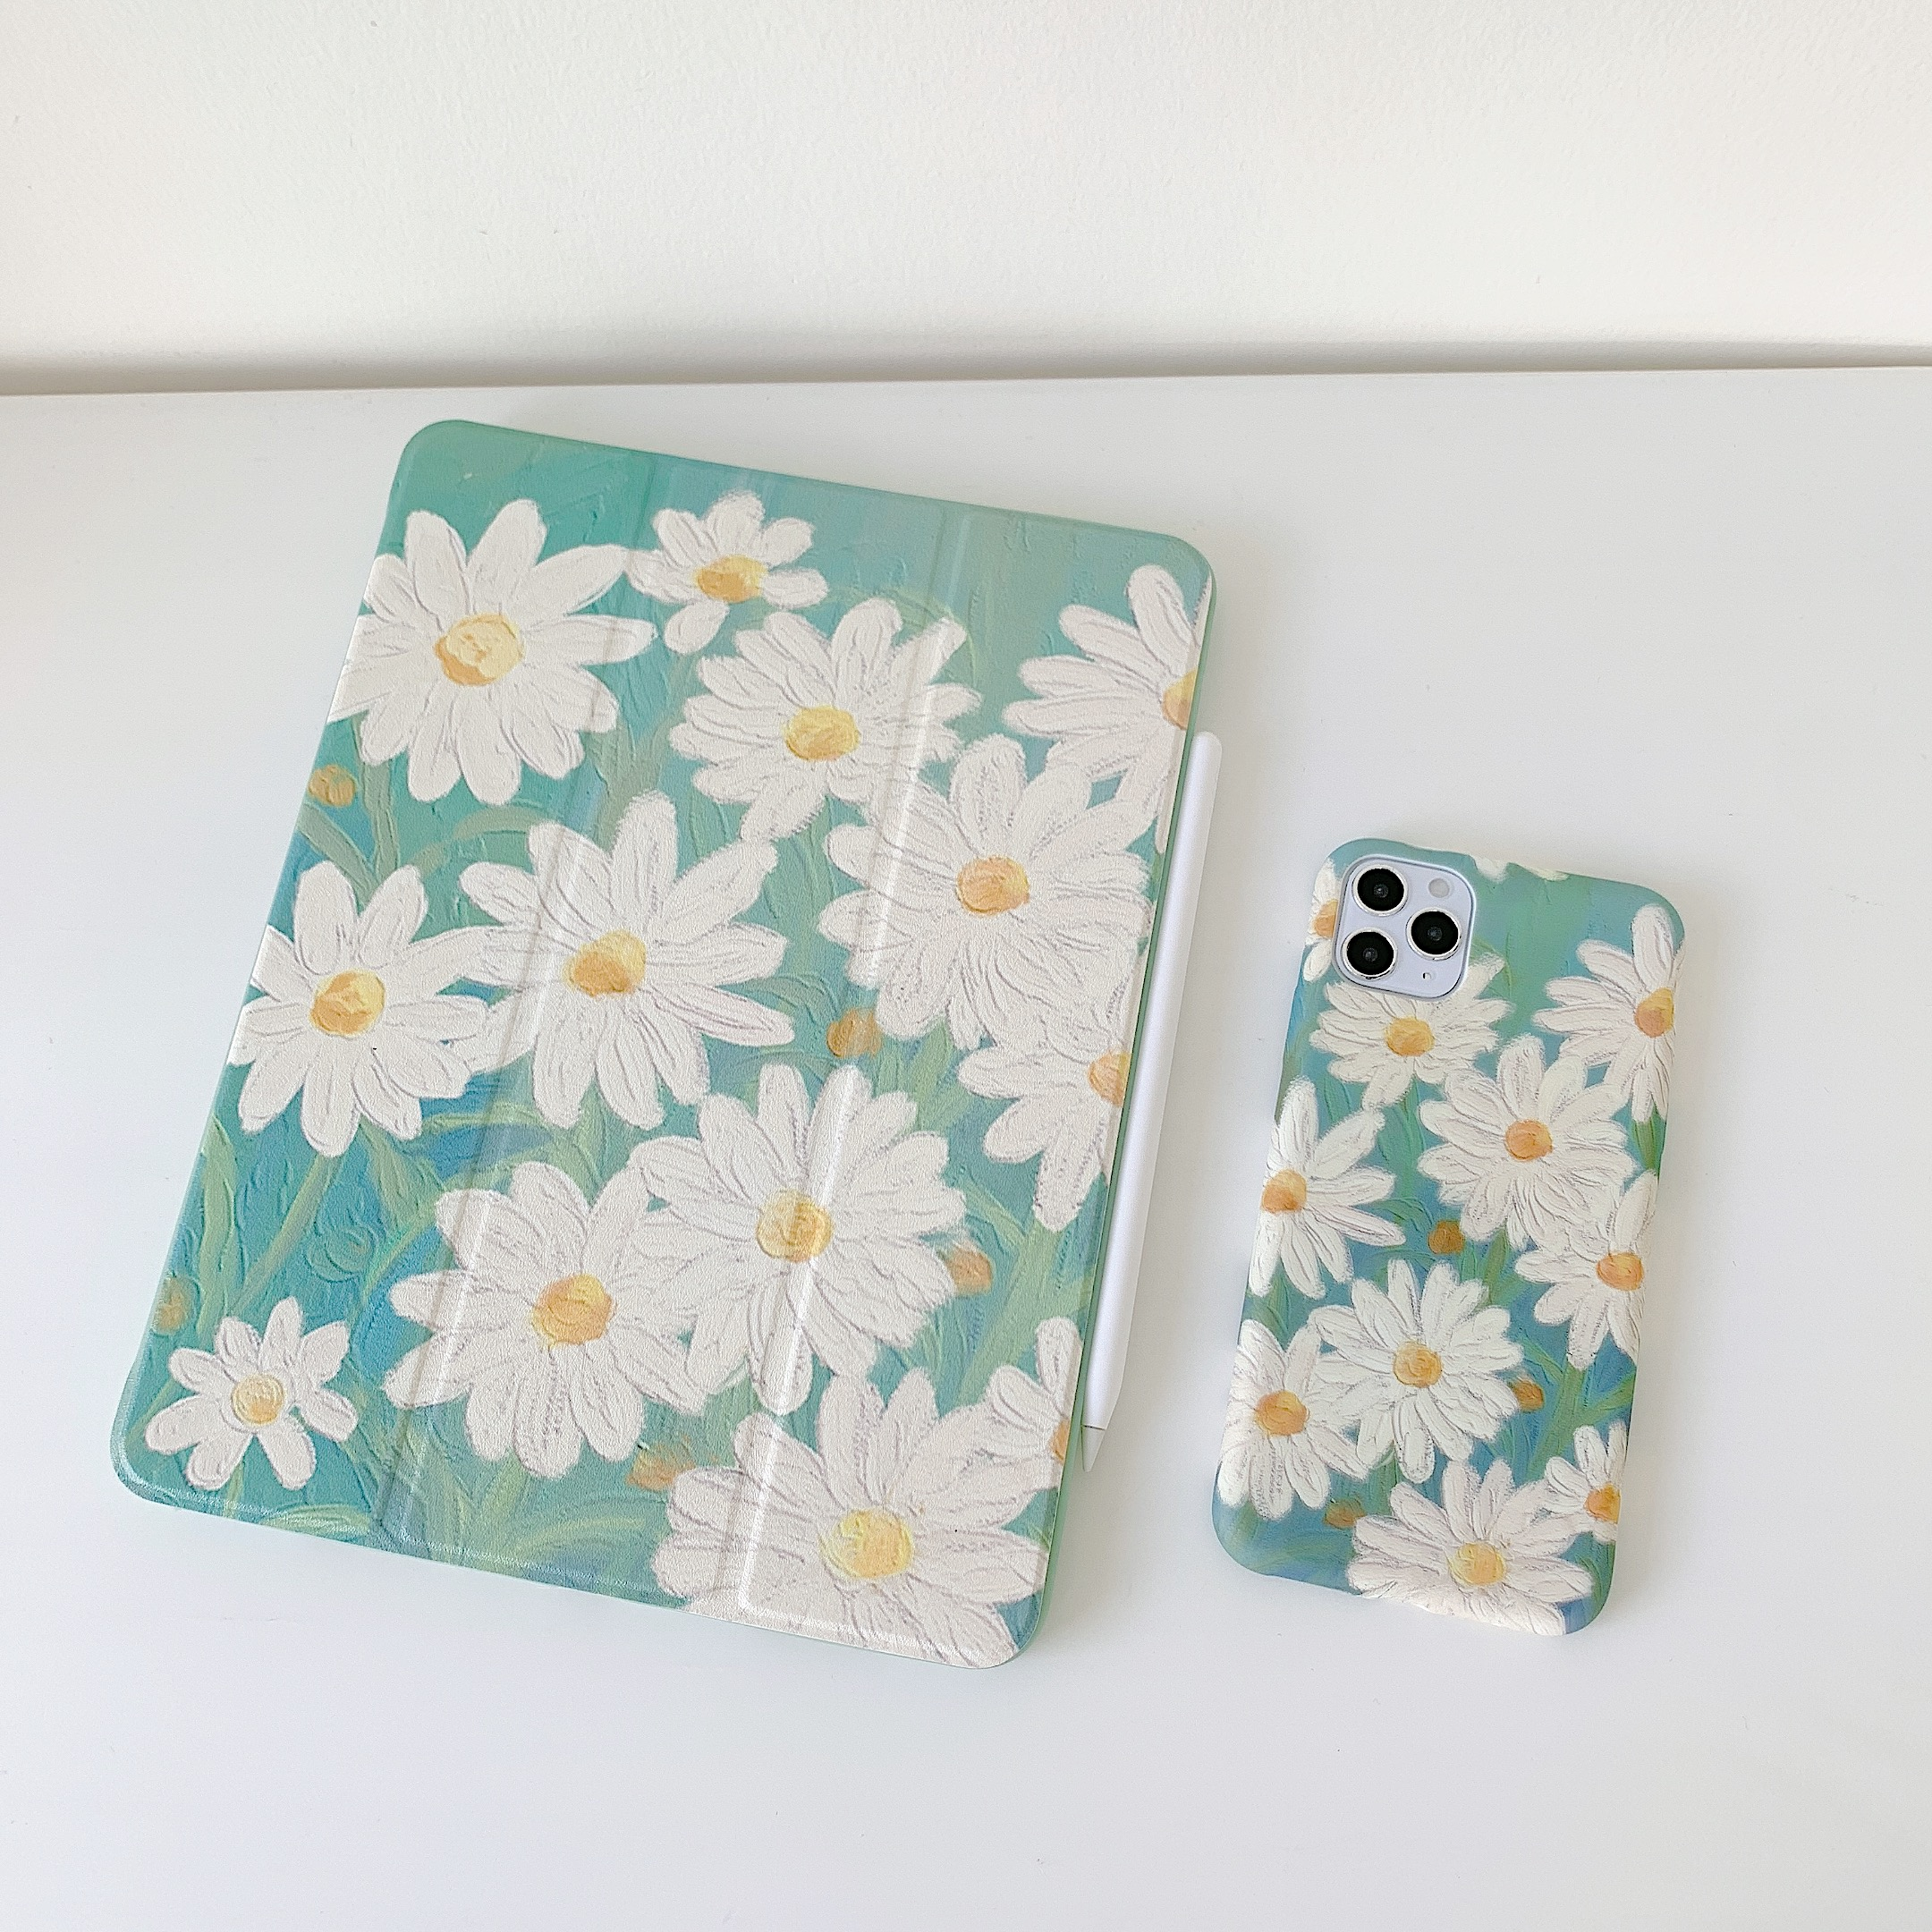 Daisy Flower  Case For Ipad Pro 2020 Air 3 Back Cover 5